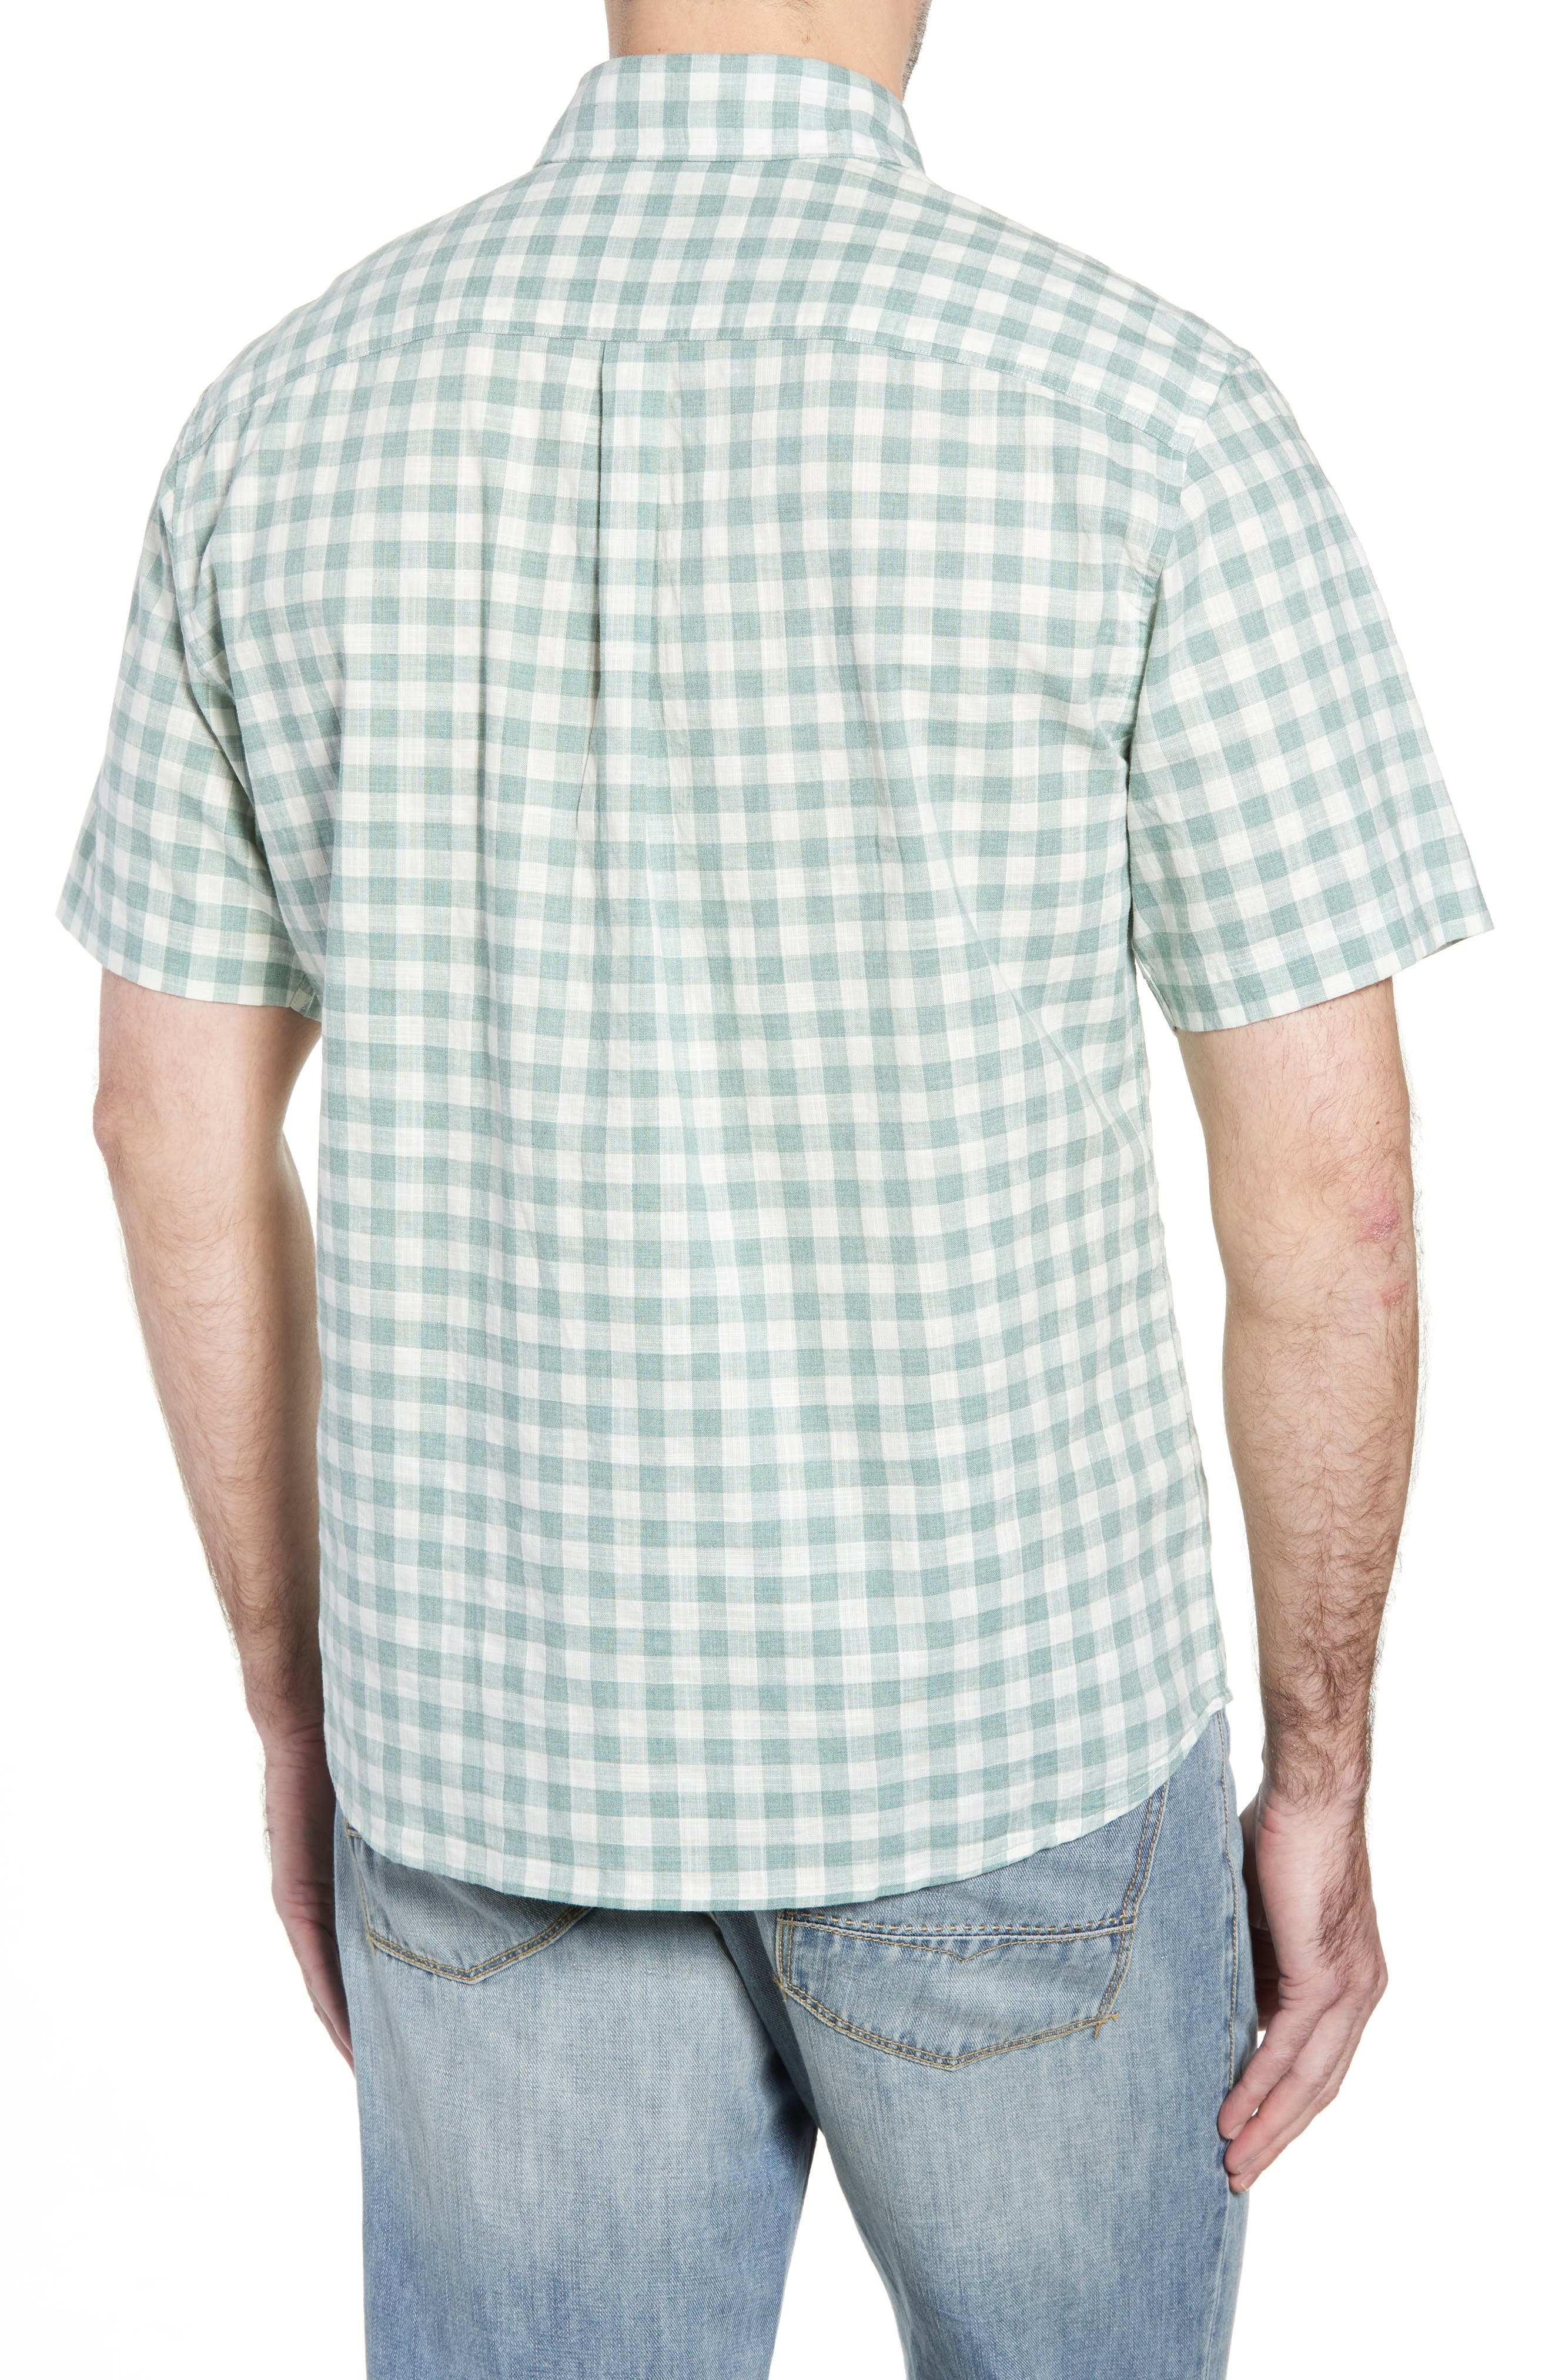 Watts Classic Fit Gingham Sport Shirt,                             Alternate thumbnail 4, color,                             Clover